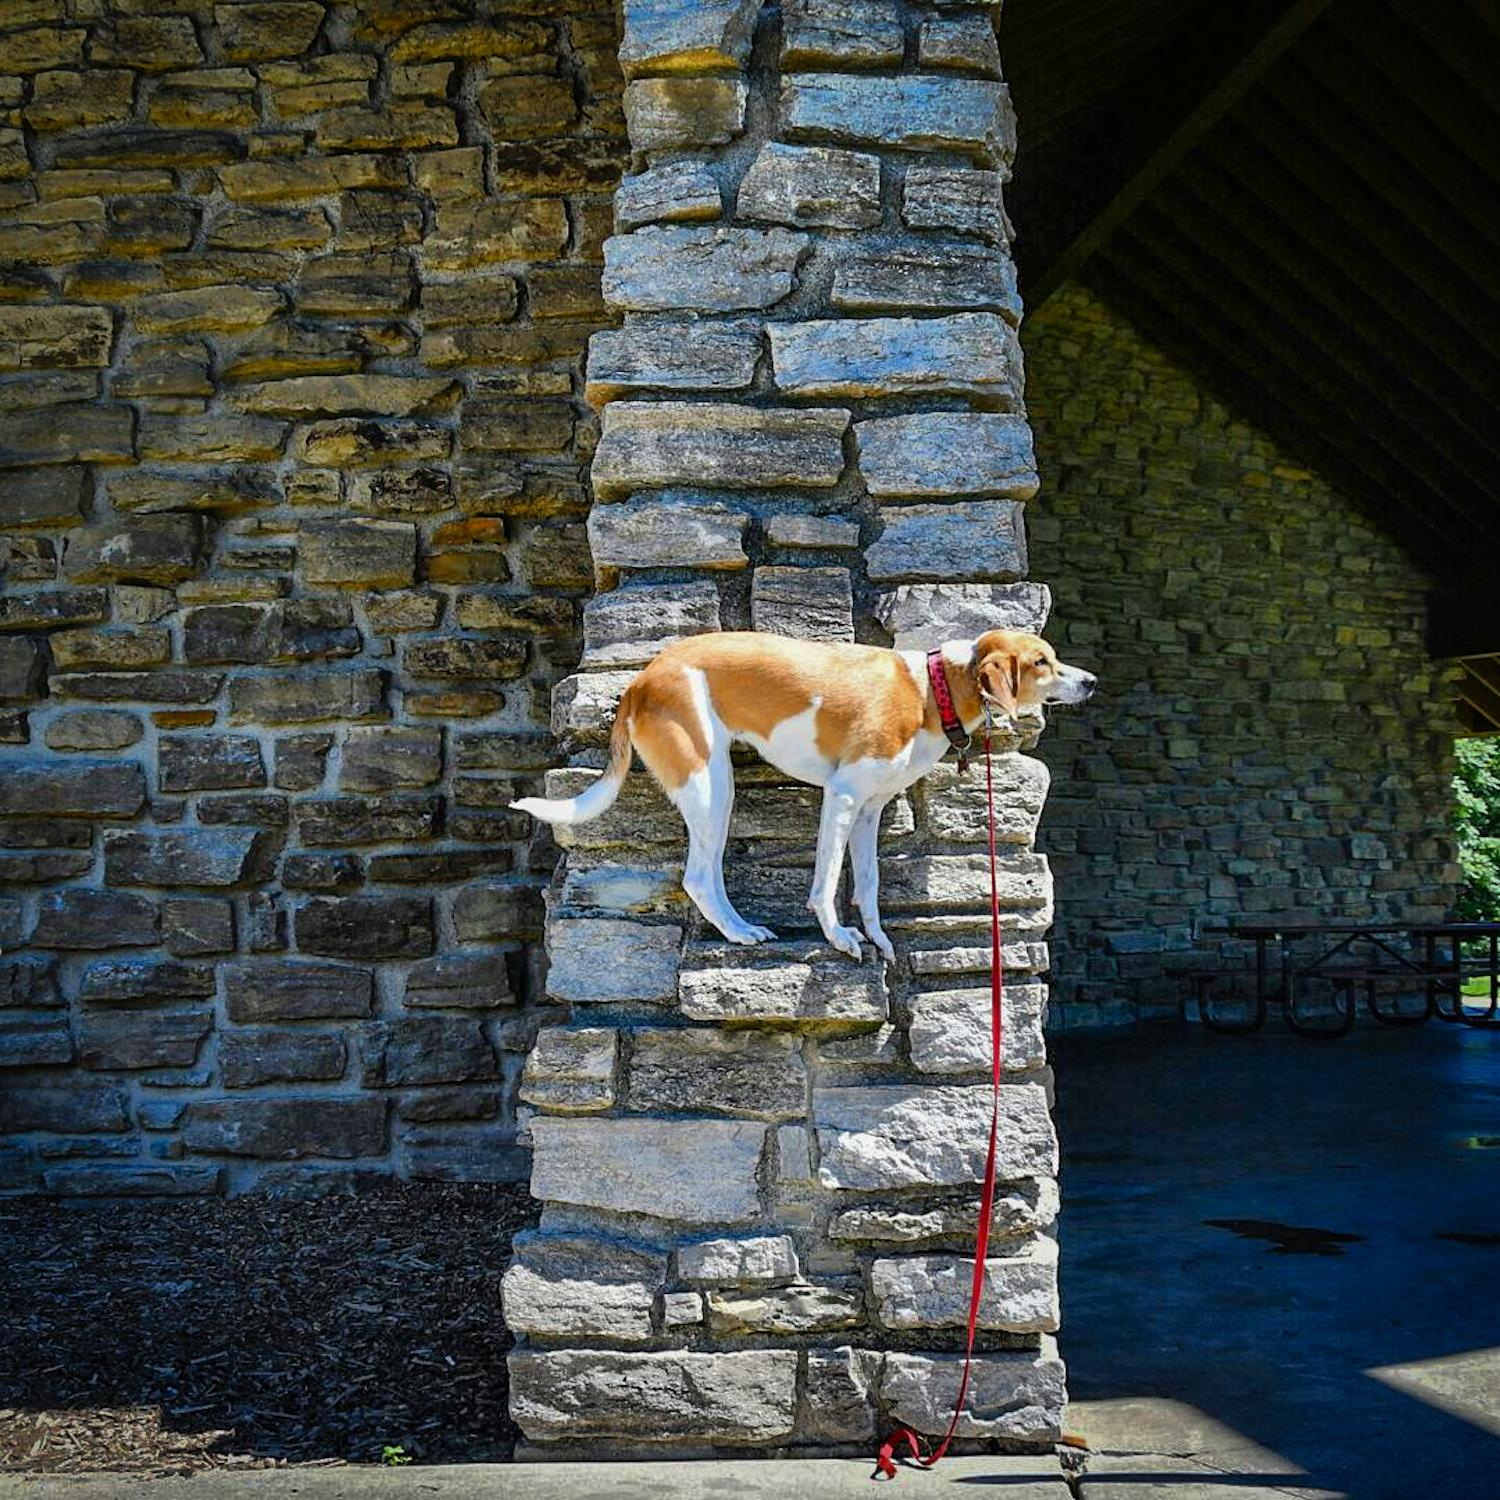 LOCATION: Daniel Drake Shelter / Mollie is a local Instagram celebrity. Famous for posing on fire hydrants in front of ArtWorks murals (and other Cincy landmarks), this hound dog has officially stolen our hearts. You can follow her adventures on Instagram @molliethehounddoggie / Image: Patti Mossey (Mollie's owner and #1 fan) // Published: 5.1.18